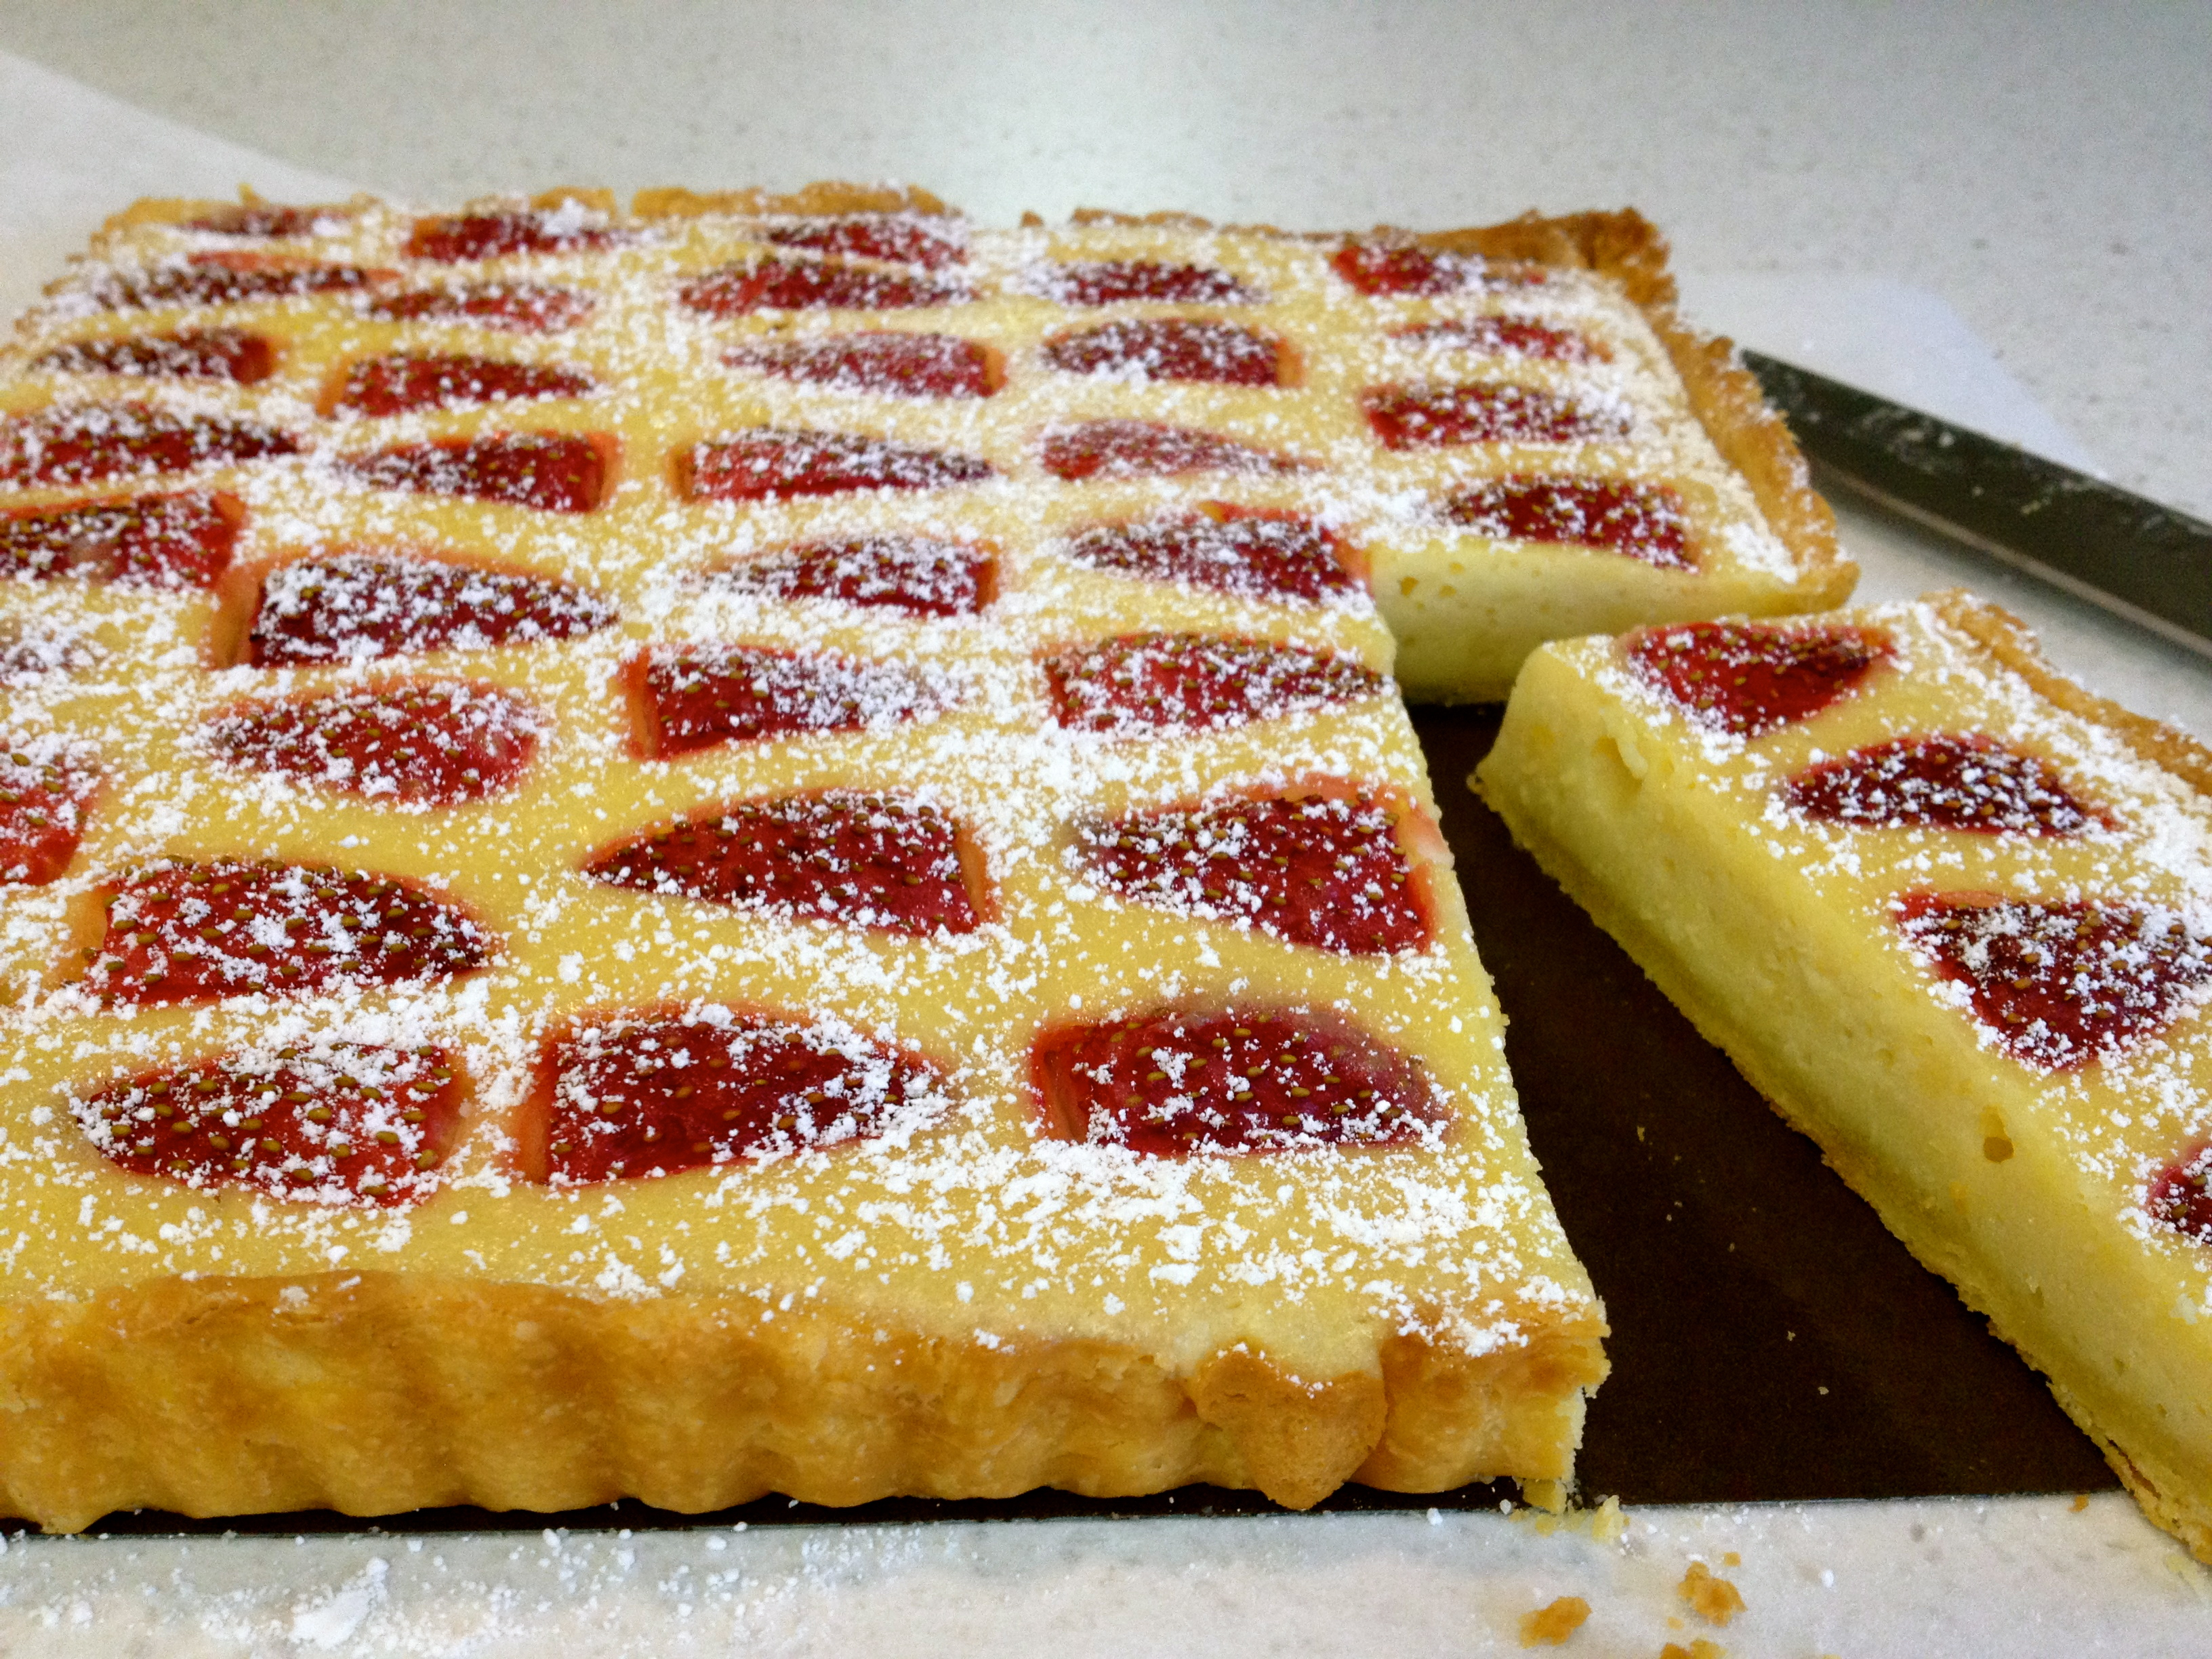 ... week's Tuesdays with Dorie: Baking with Julia baked yogurt tart